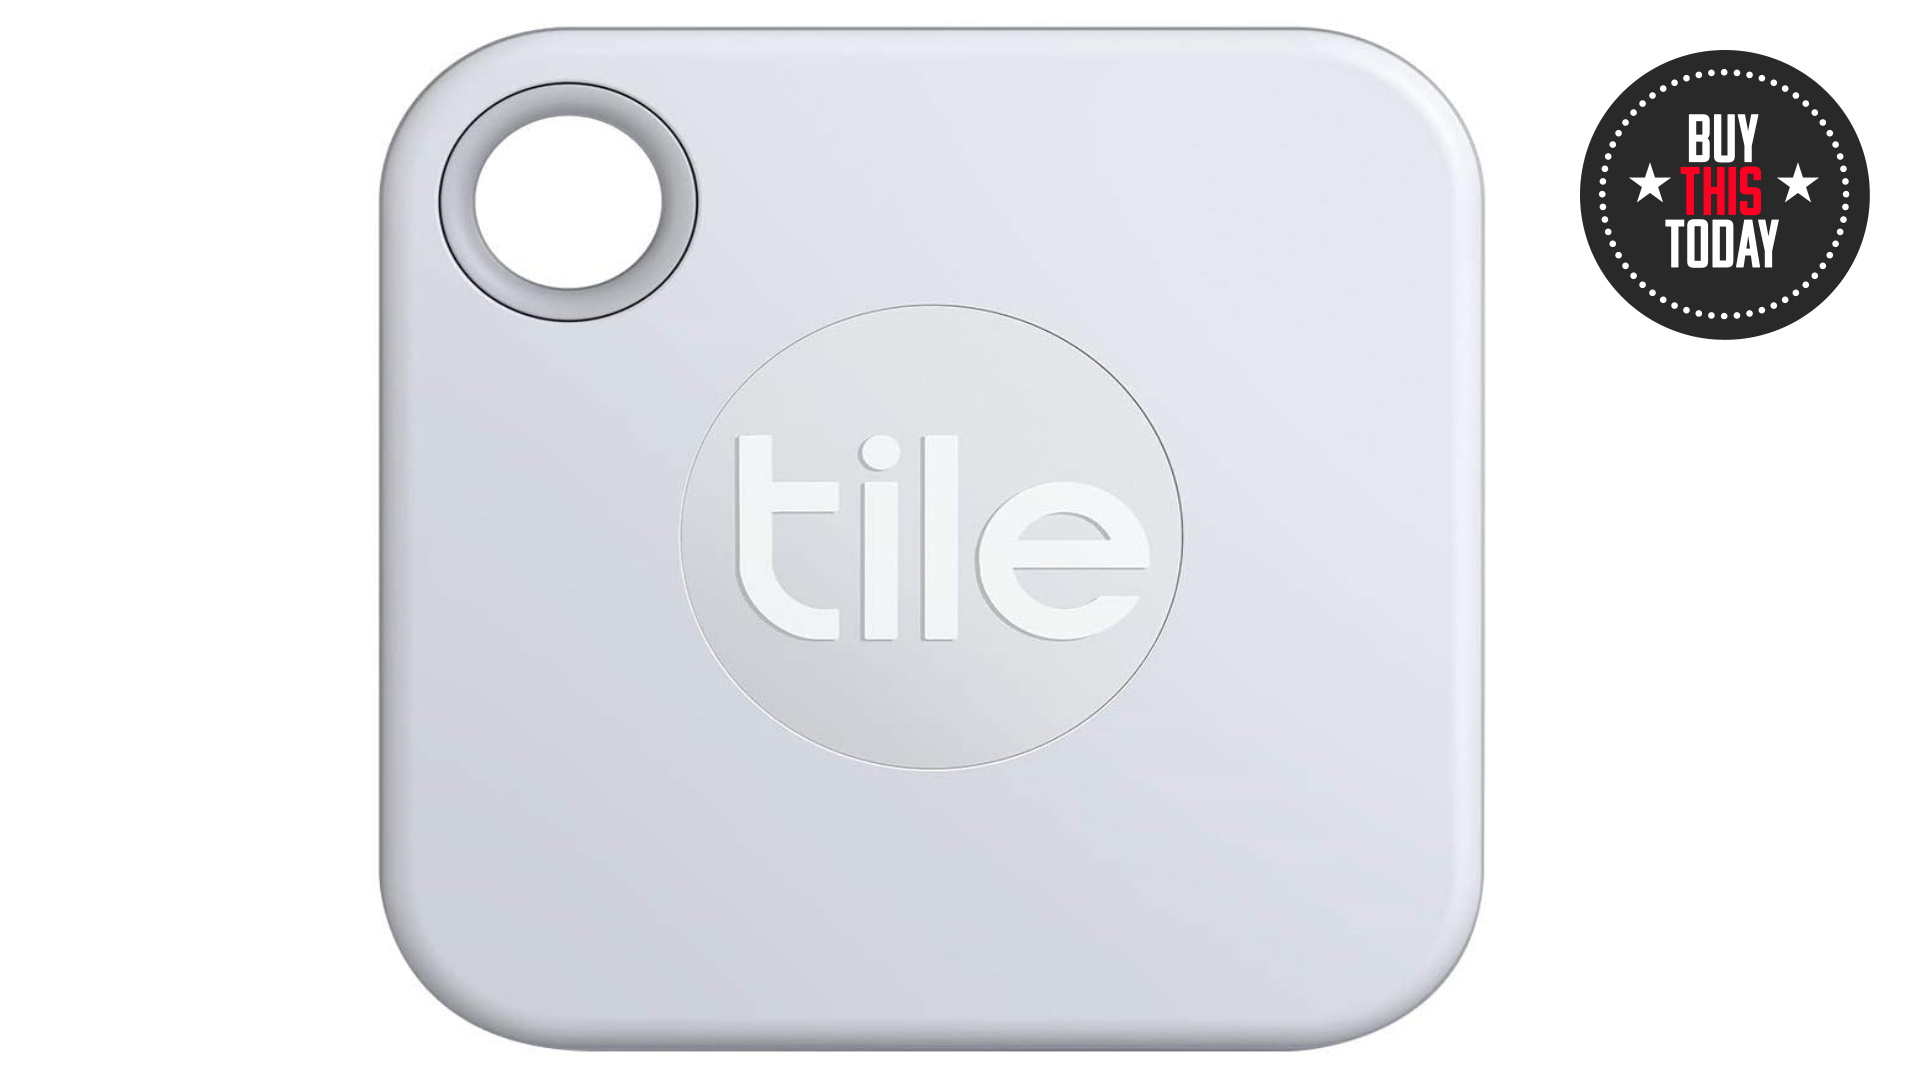 buy this today a small finder device